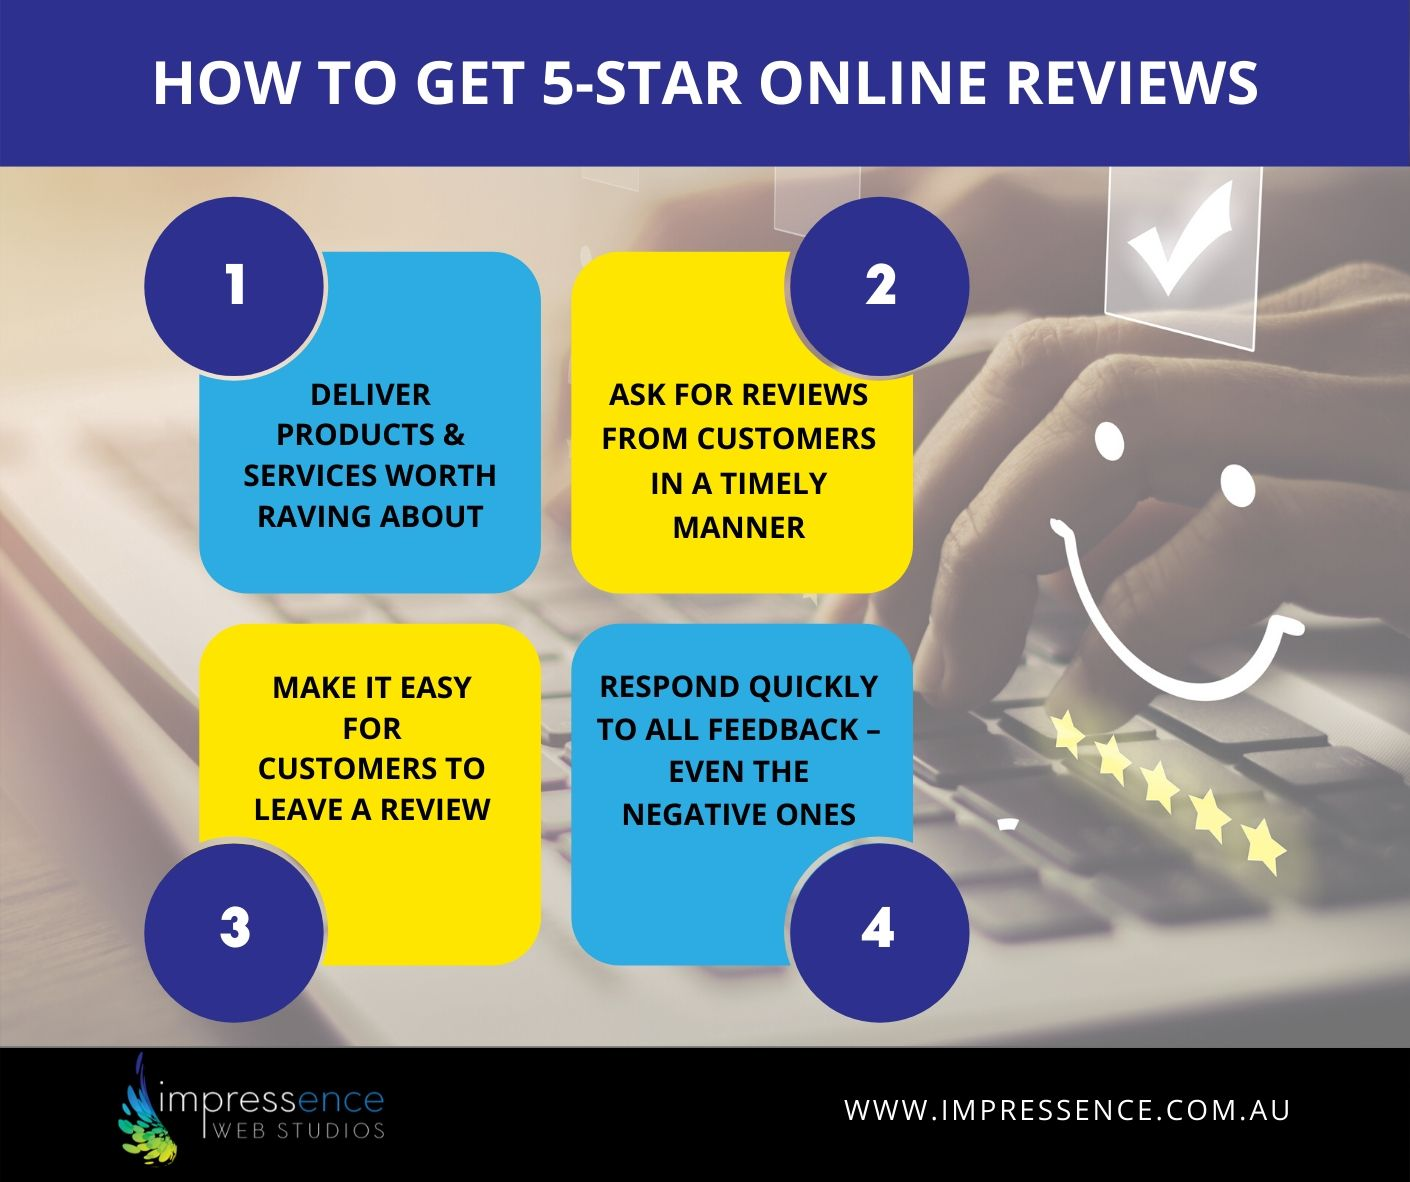 How to Get 5-Star Online Reviews